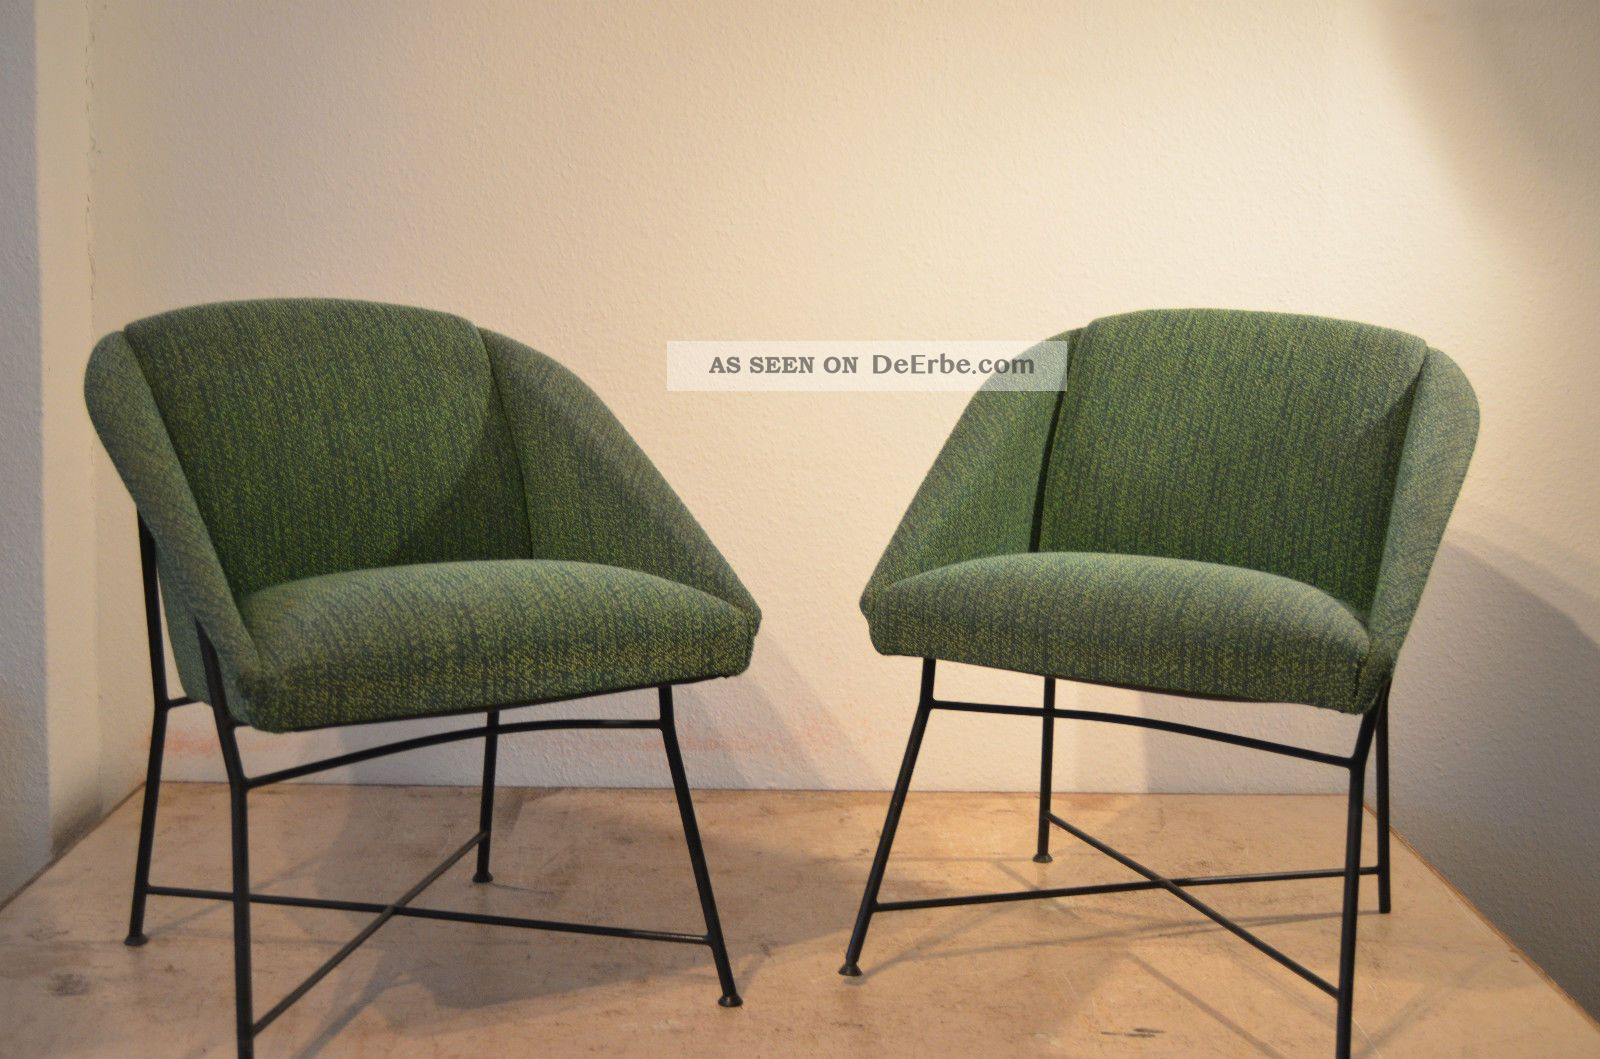 Beautiful Augusto Bozzi Lounge Chairs Sessel 50er Saporiti Design Knoll Eames Cassina  1950 1959 Bild Awesome Ideas